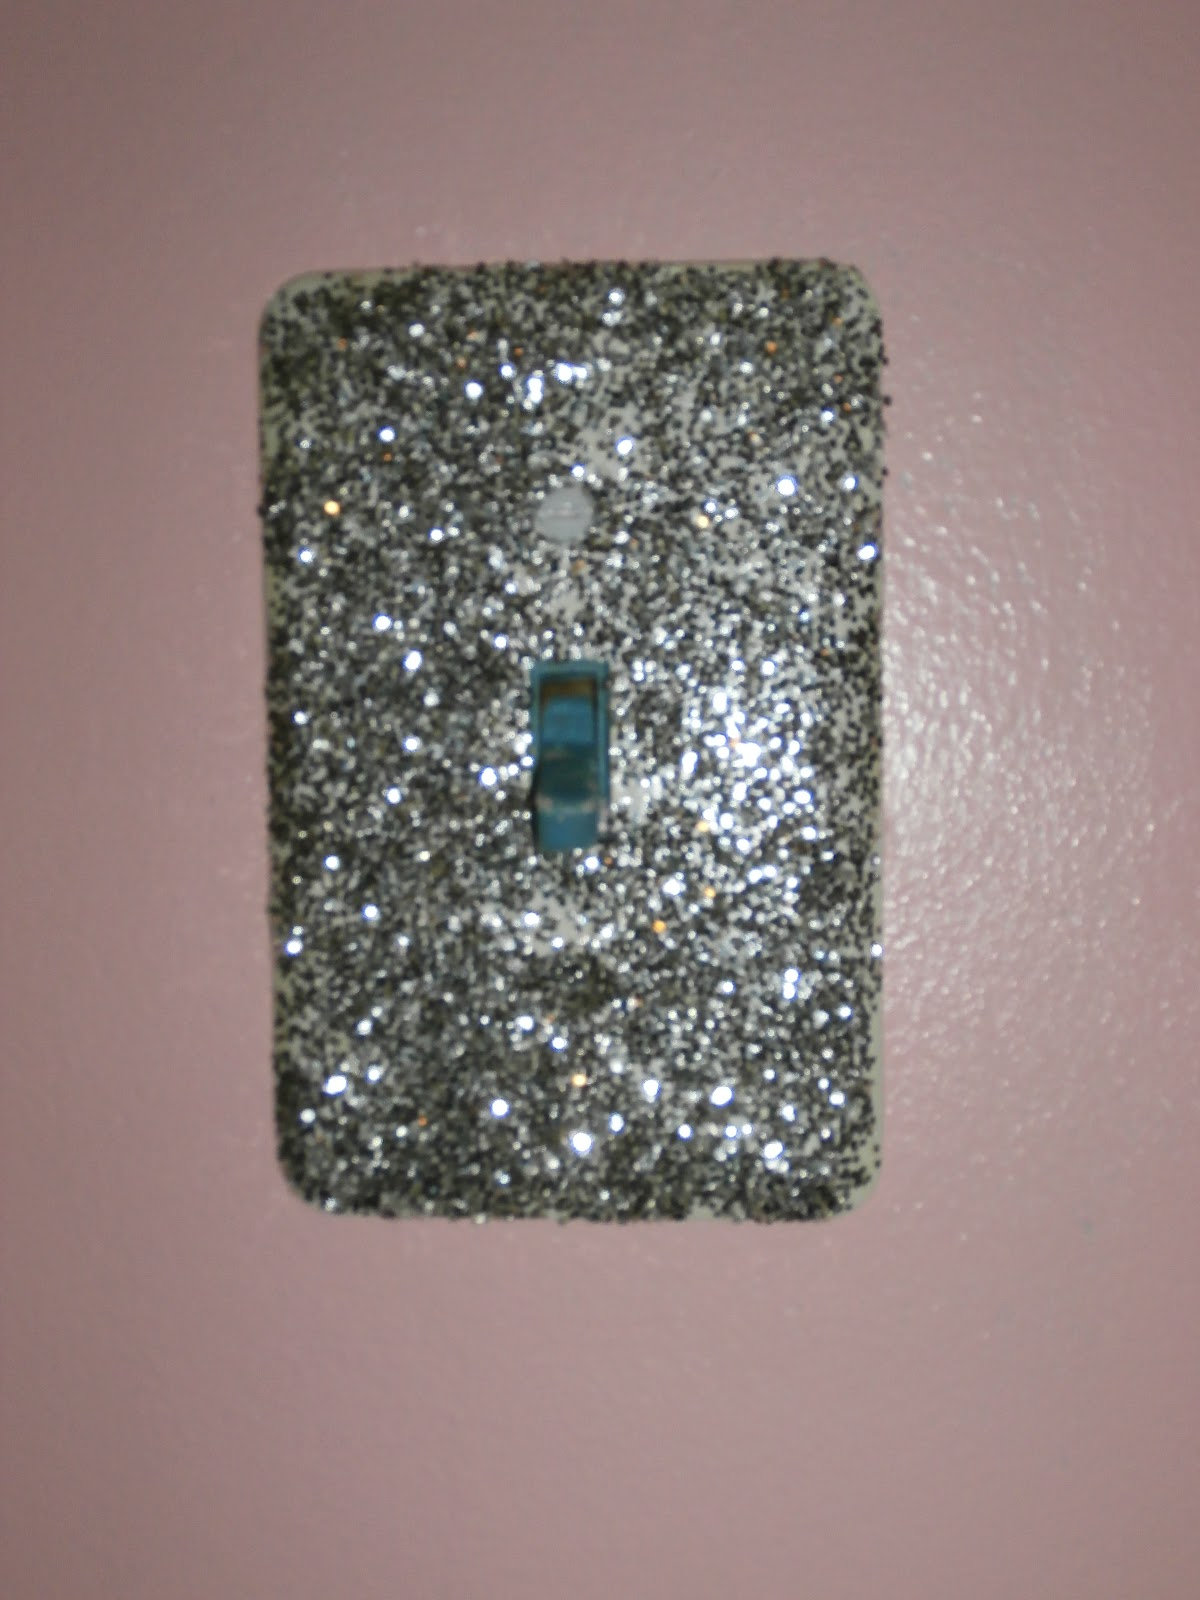 My Life in Podunk Sparkly Light Switch Covers